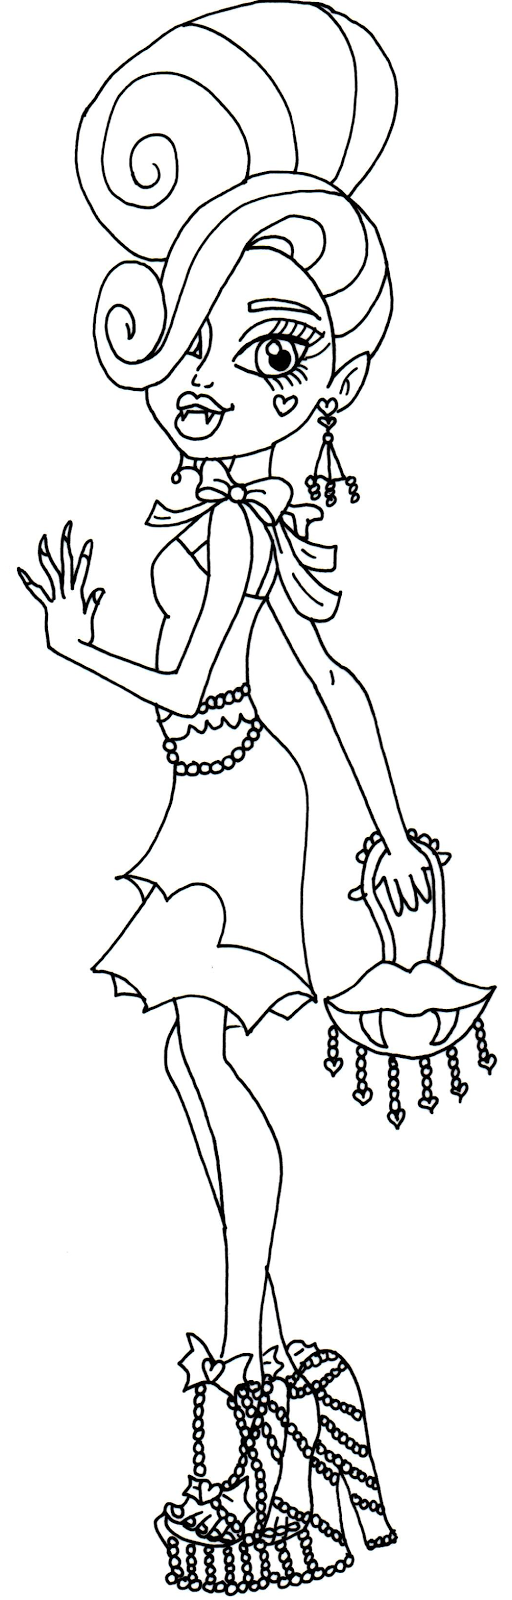 Frights Camera Action Coloring Pages | Coloring Pages